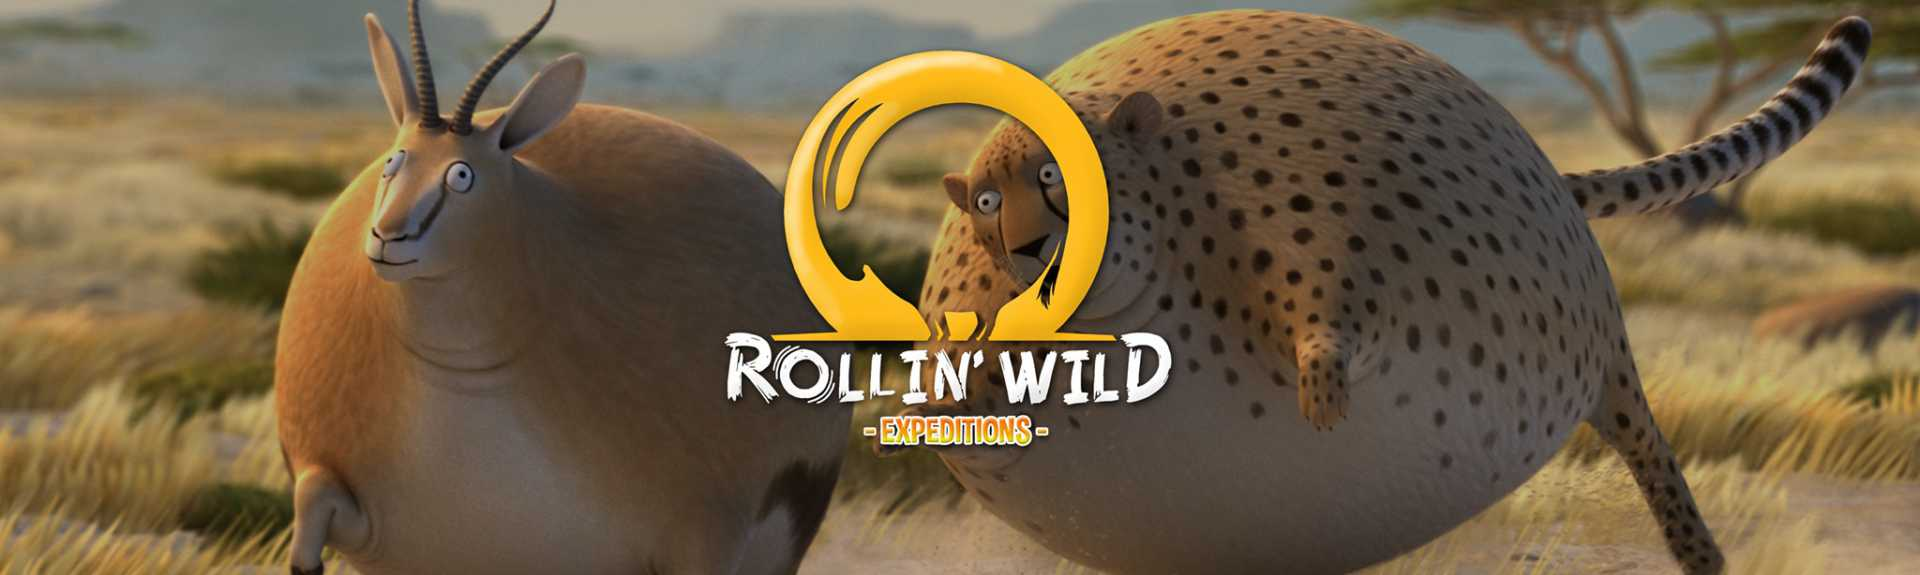 Rollin' Wild Expeditions